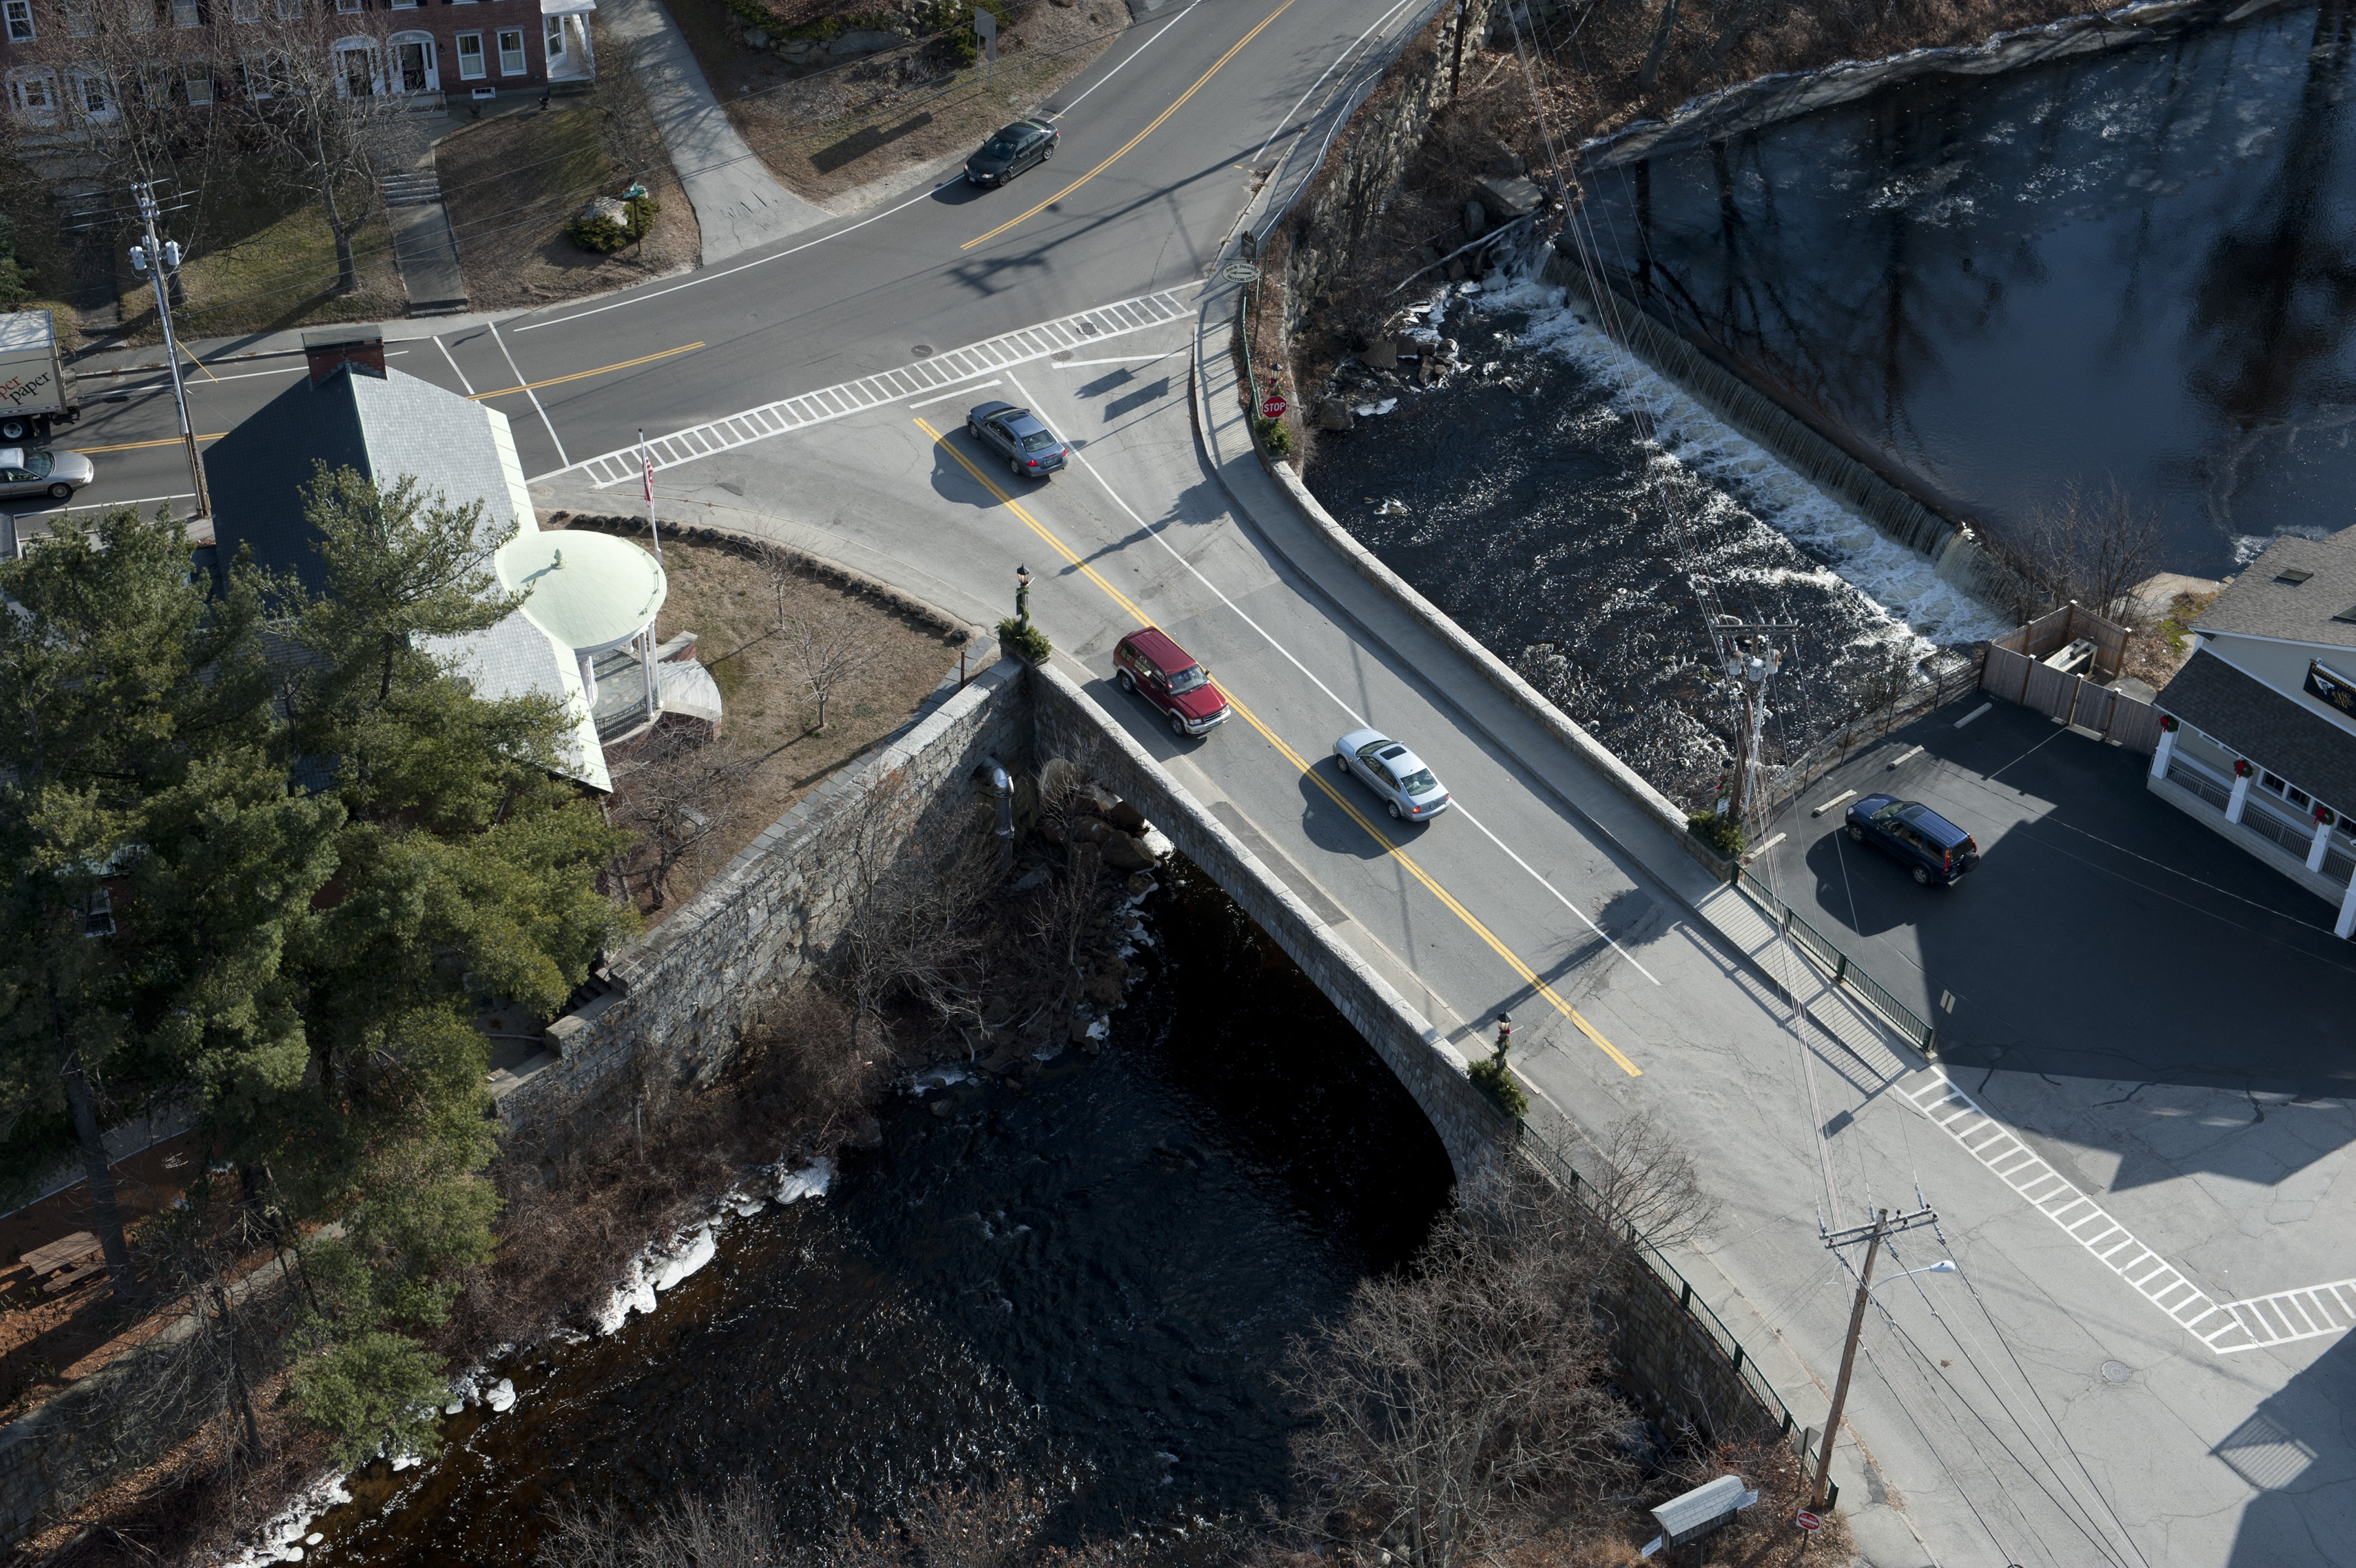 Aerial View of Main St Bridge & Intersection with Rte 202